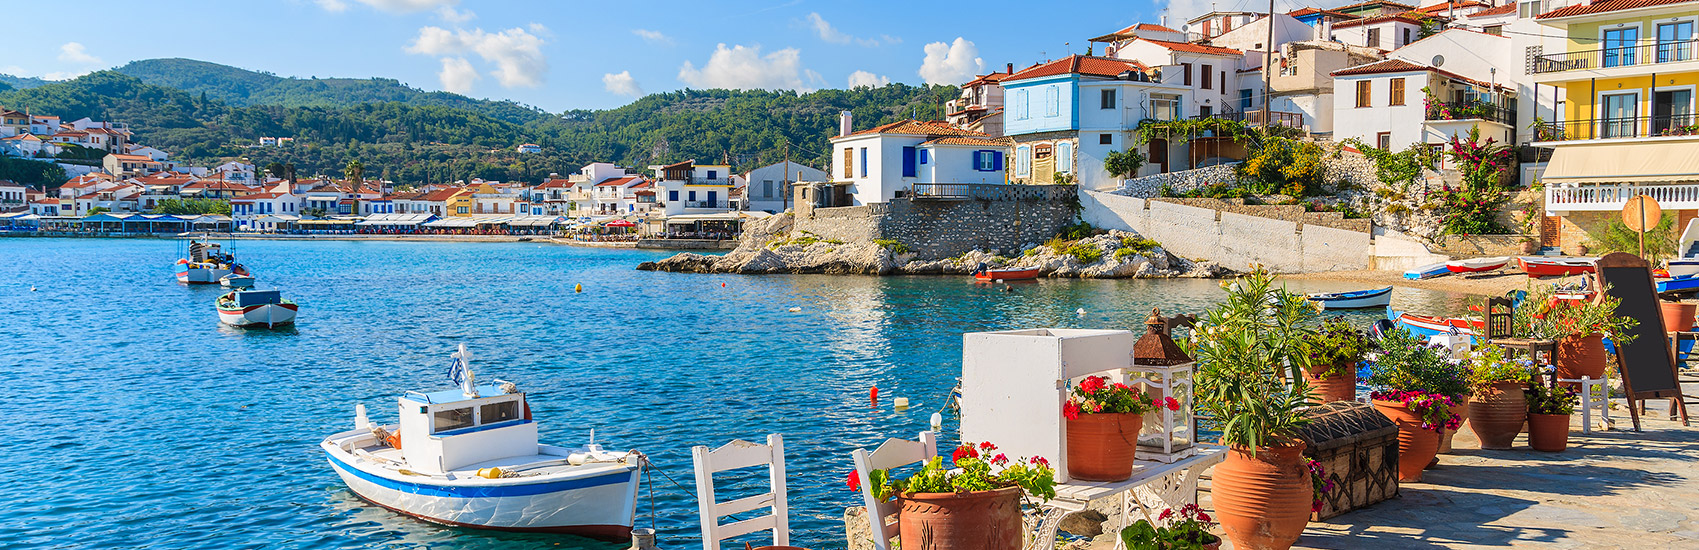 Seabourn Announces 2021 Summer Greece Voyages 2